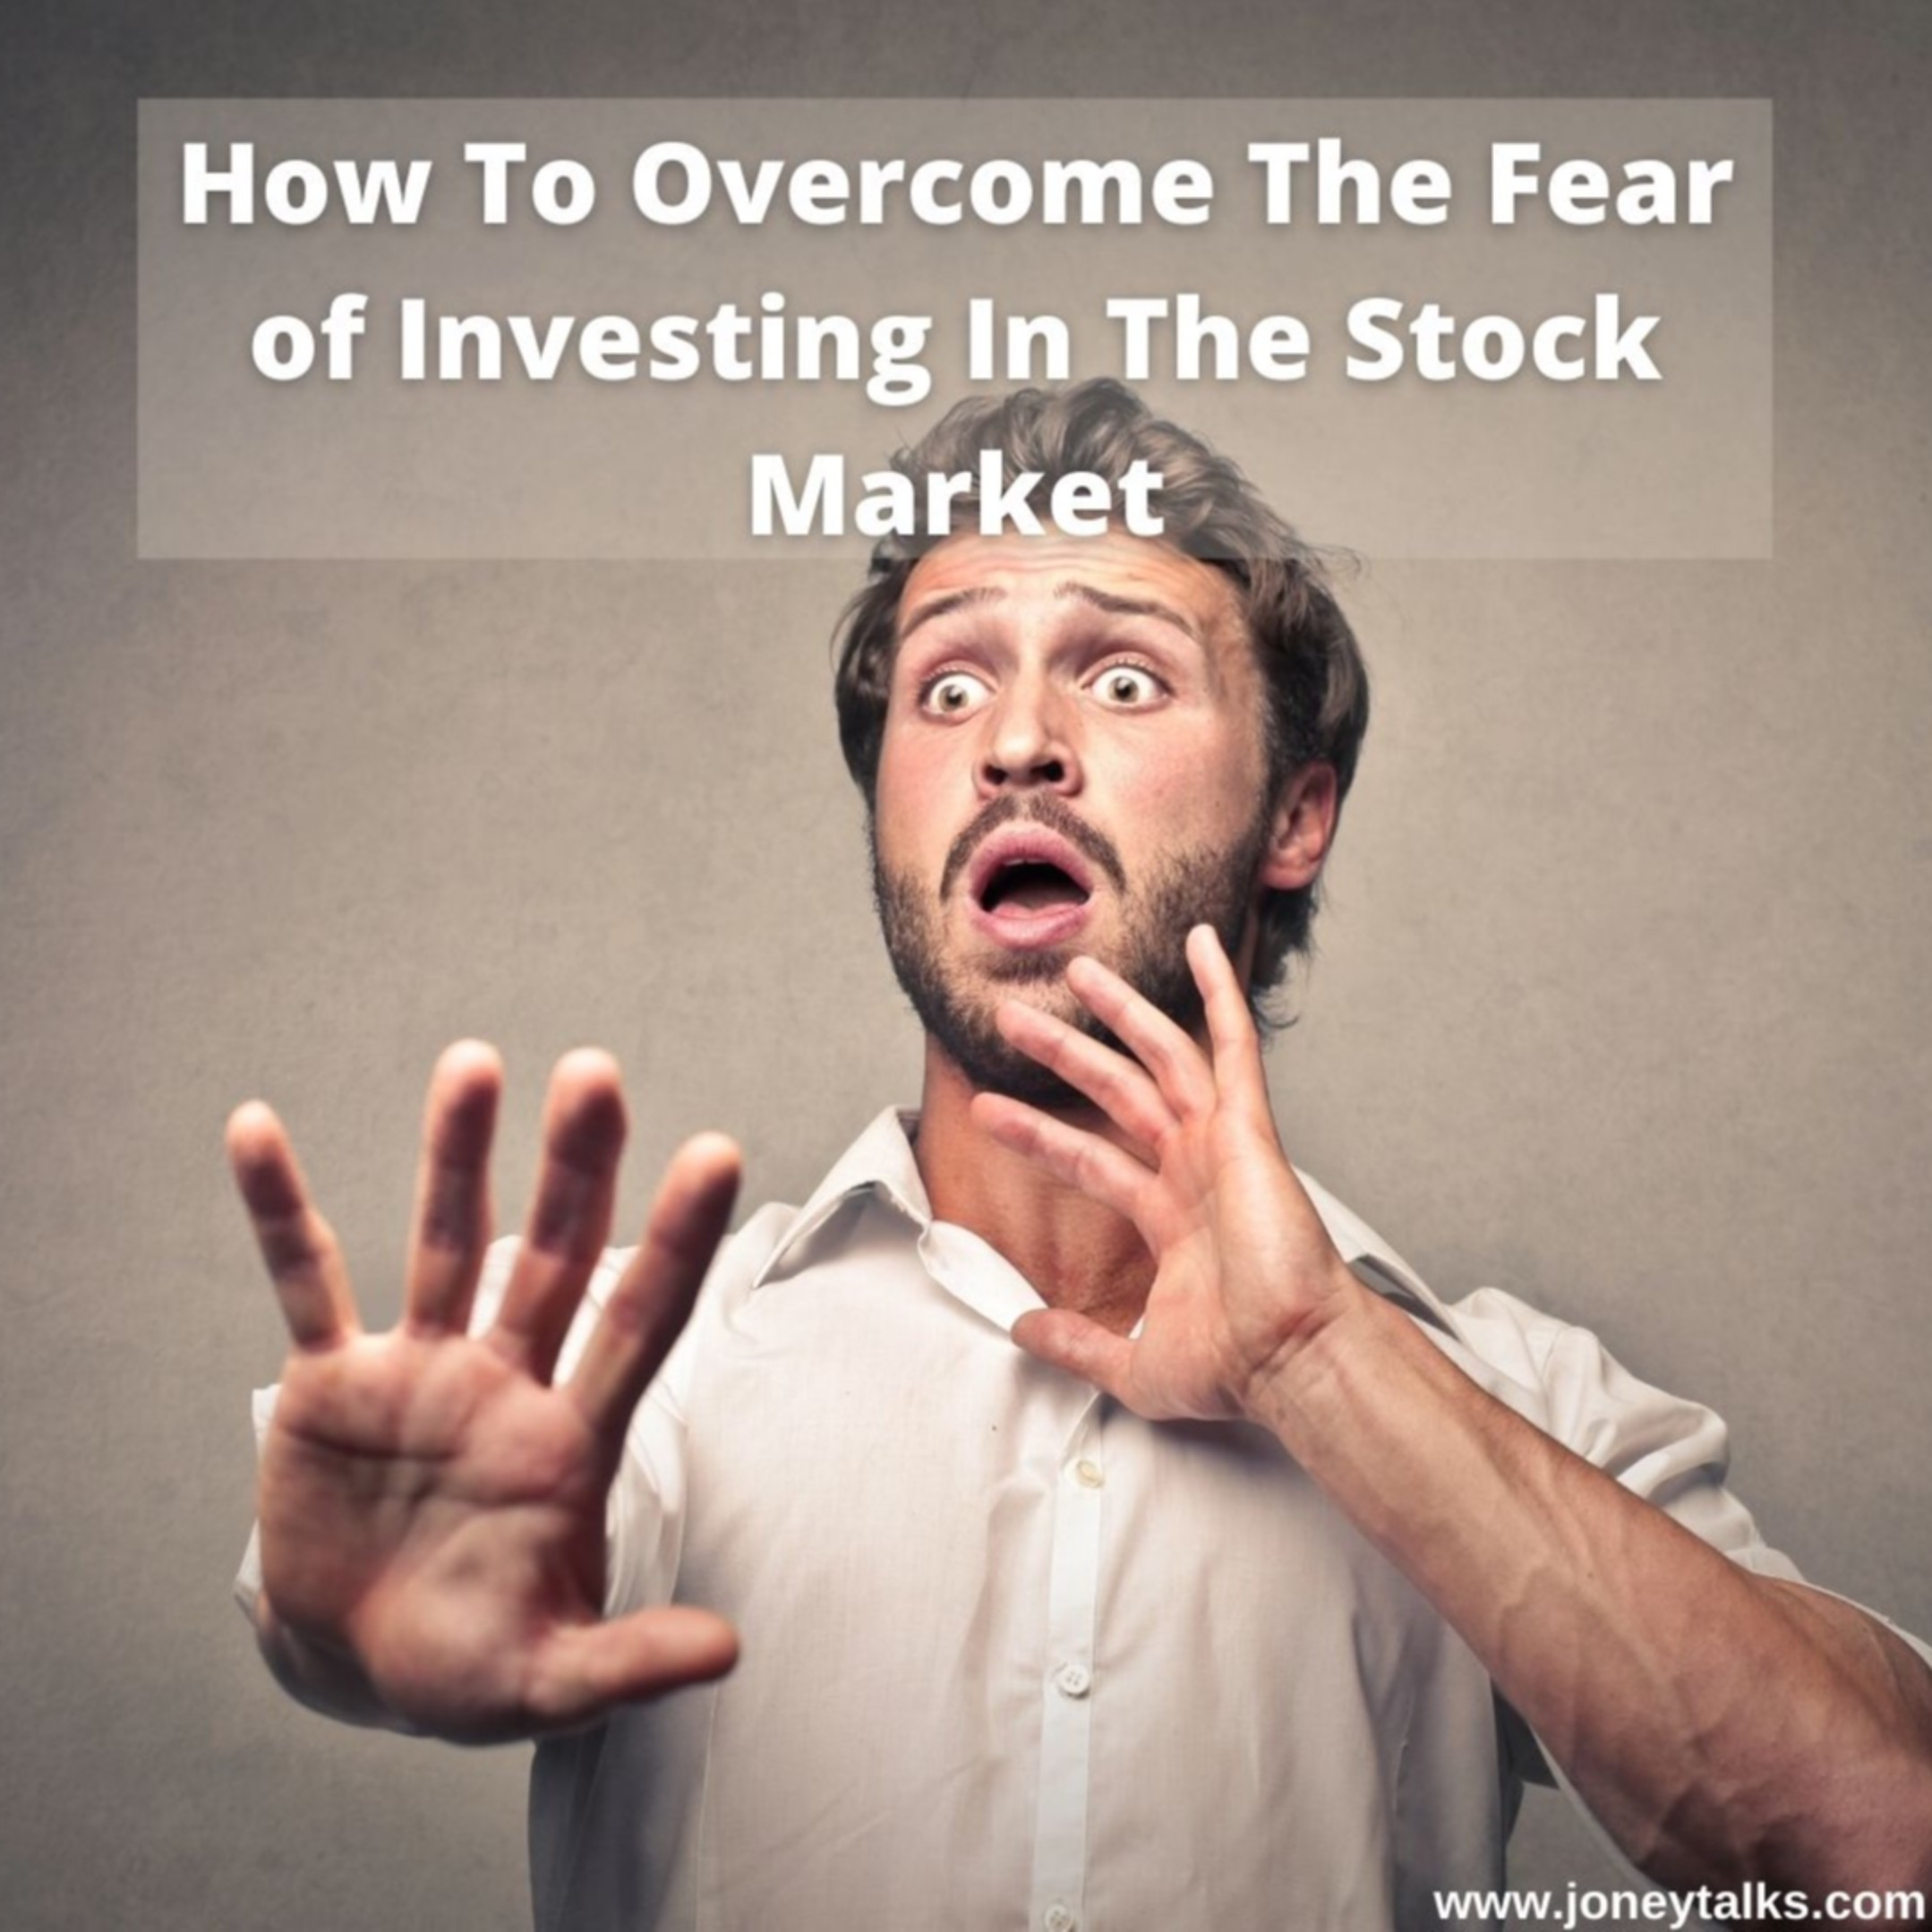 How To Overcome The Fear of Investing In The Stock Market with Jesse